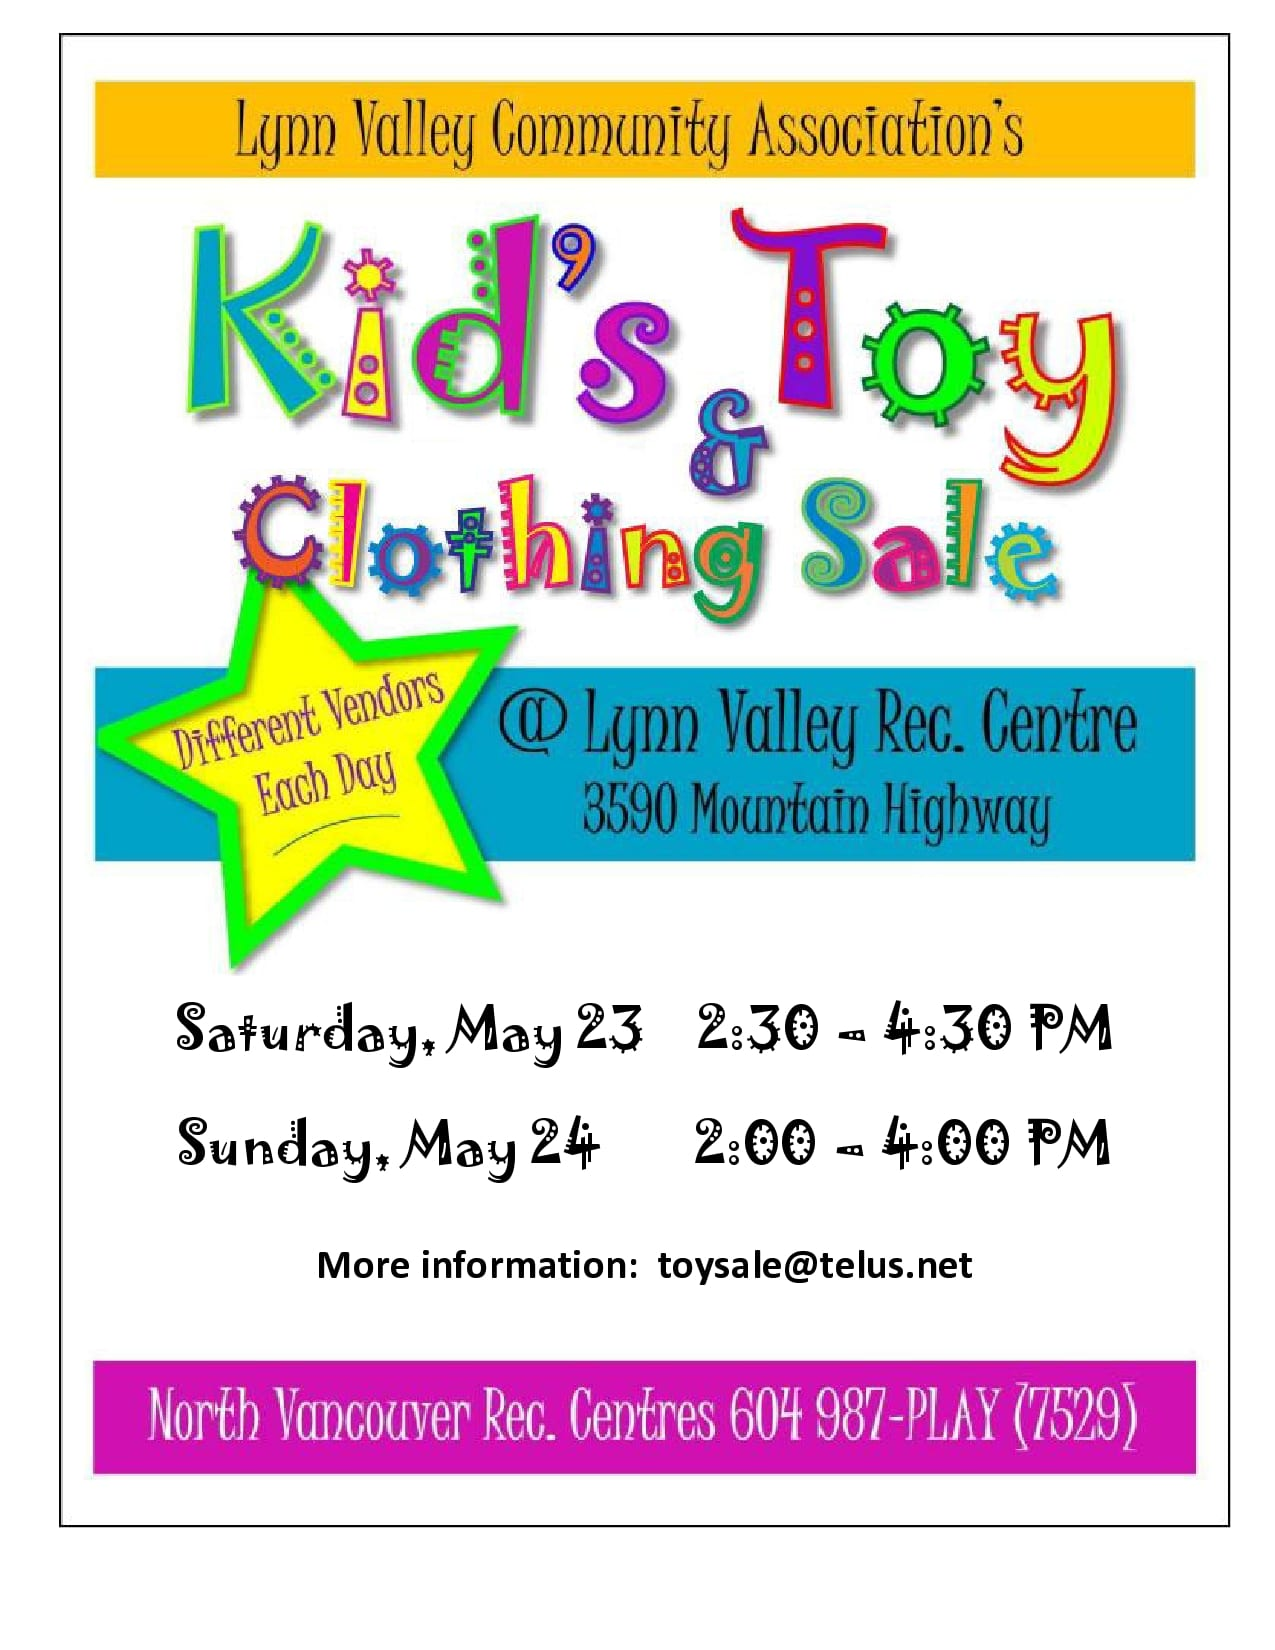 Kid's Toy and Clothing Sale at Lynn Valley Recreation Centre – Cardinal Hall